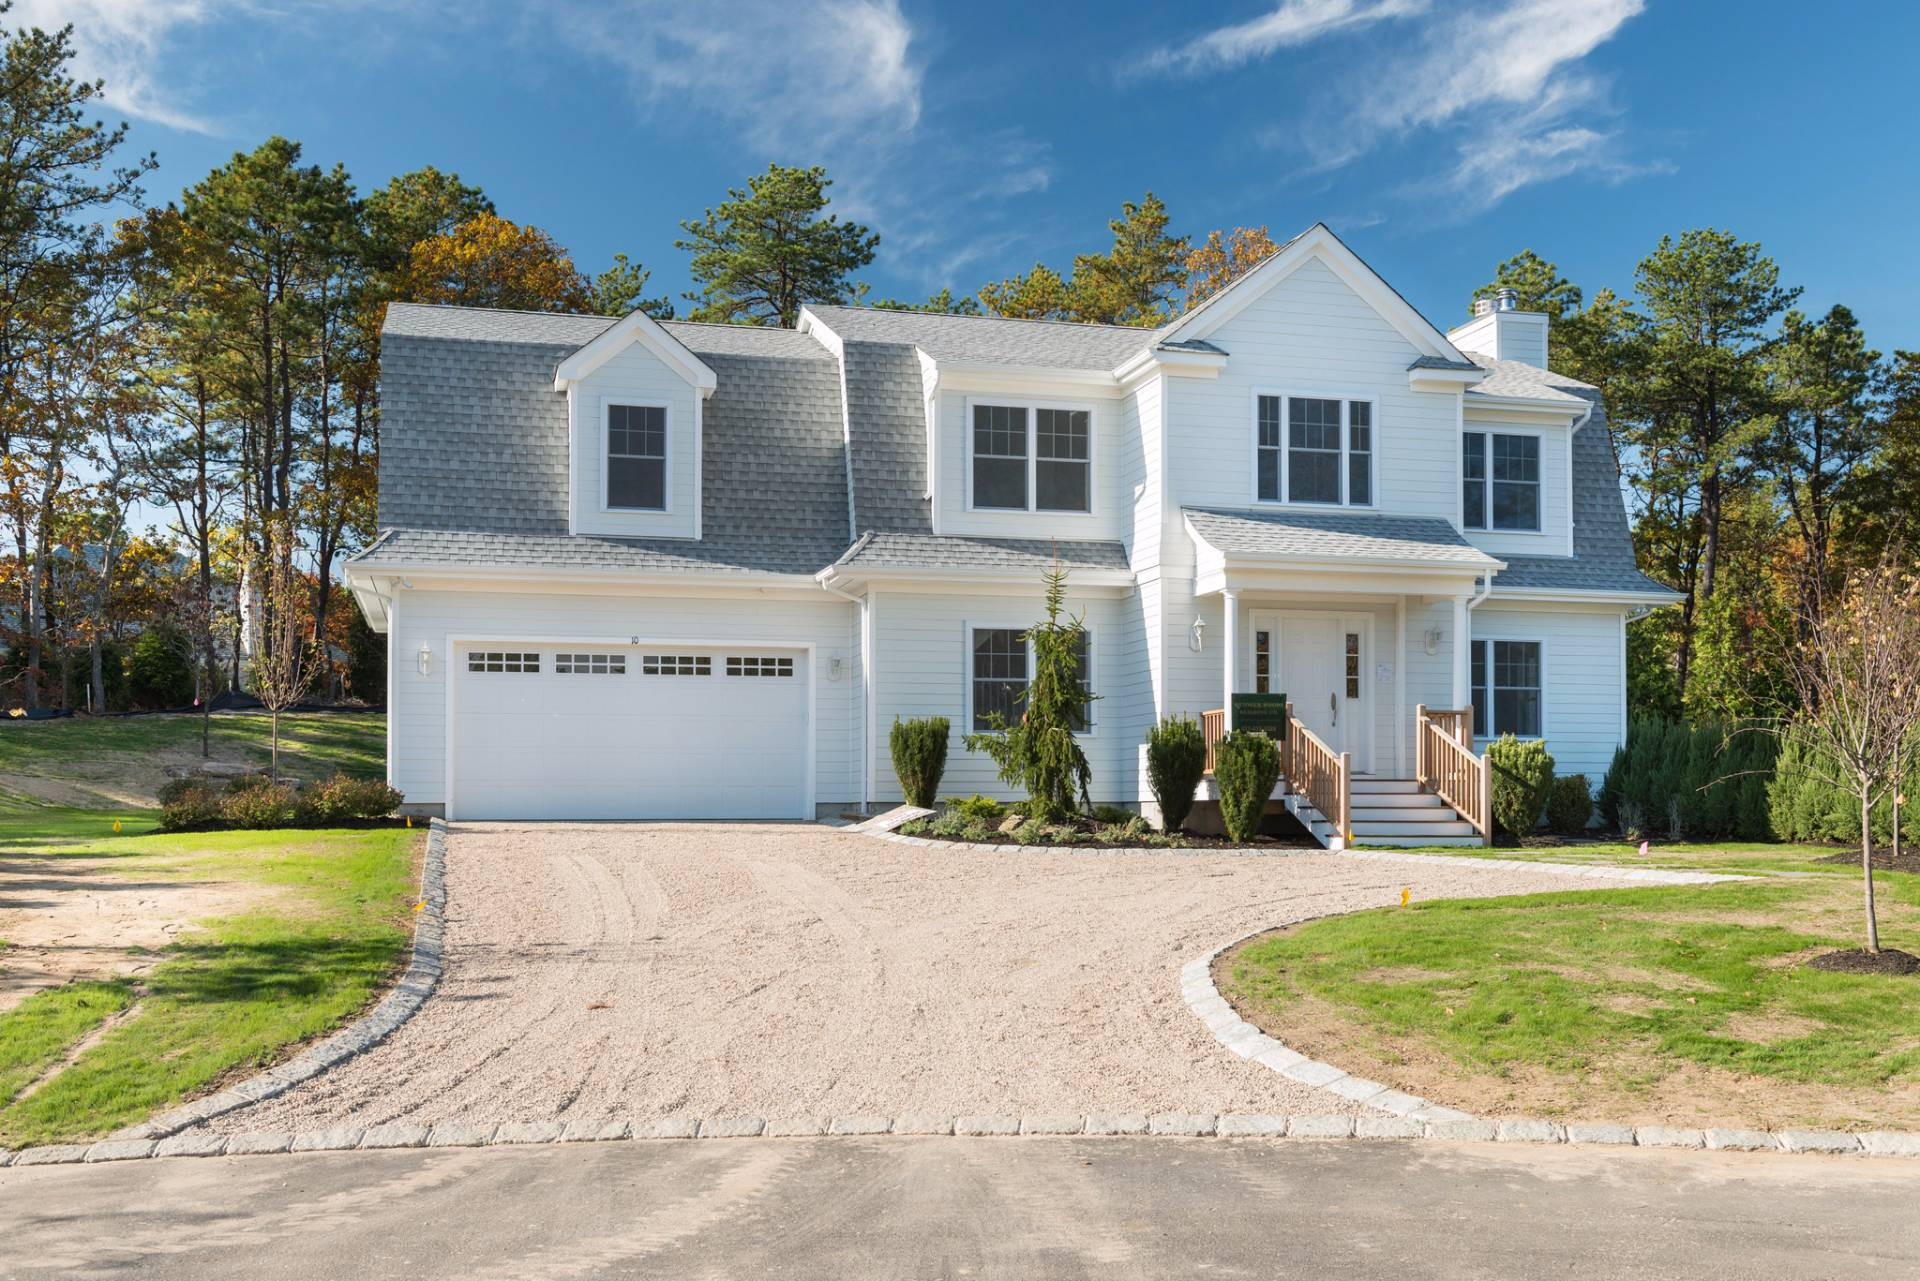 Single Family Home for Sale at New Construction By Top Builder With Pool Quiogue, New York